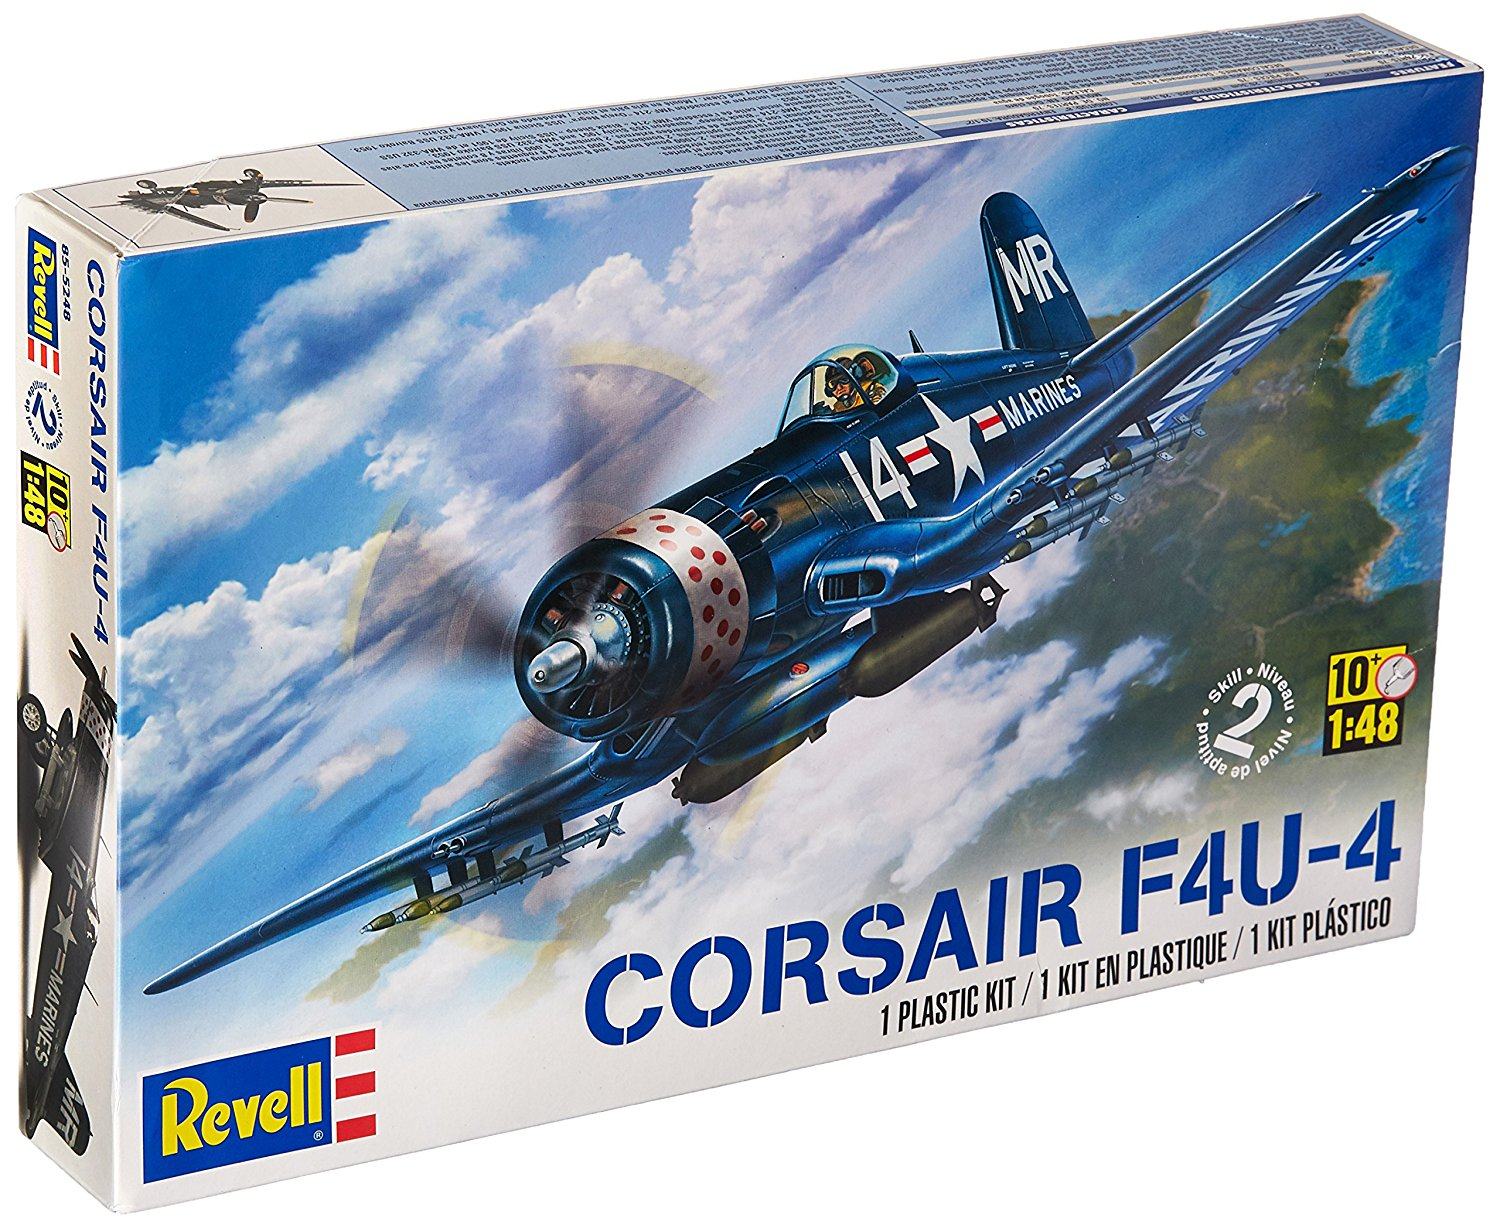 Corsair F4U-4 1:48 Scale, Pilot Separate Set 03955 172 F4U4 With Detailed Parts Highly... by